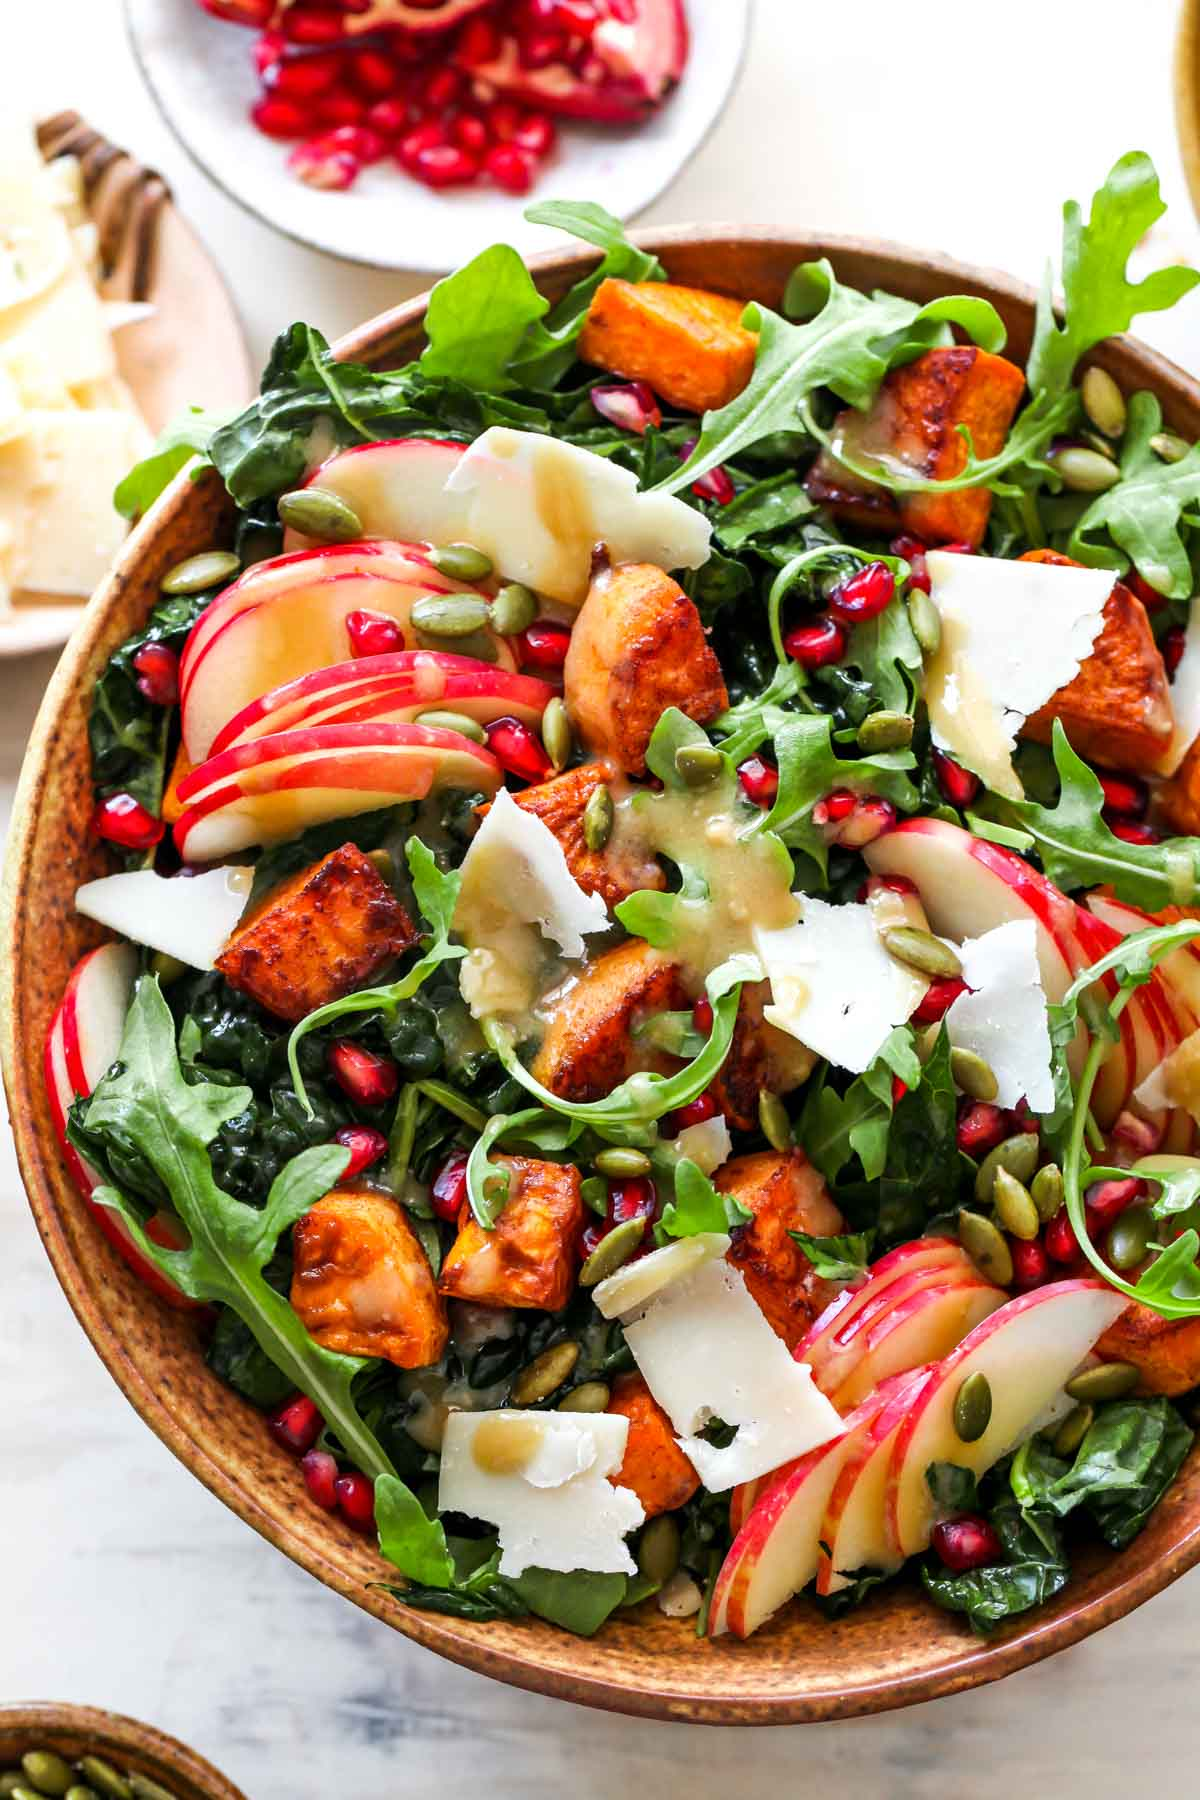 Fall salad in a gold bowl with greens, roasted sweet potatoes, and maple dressing